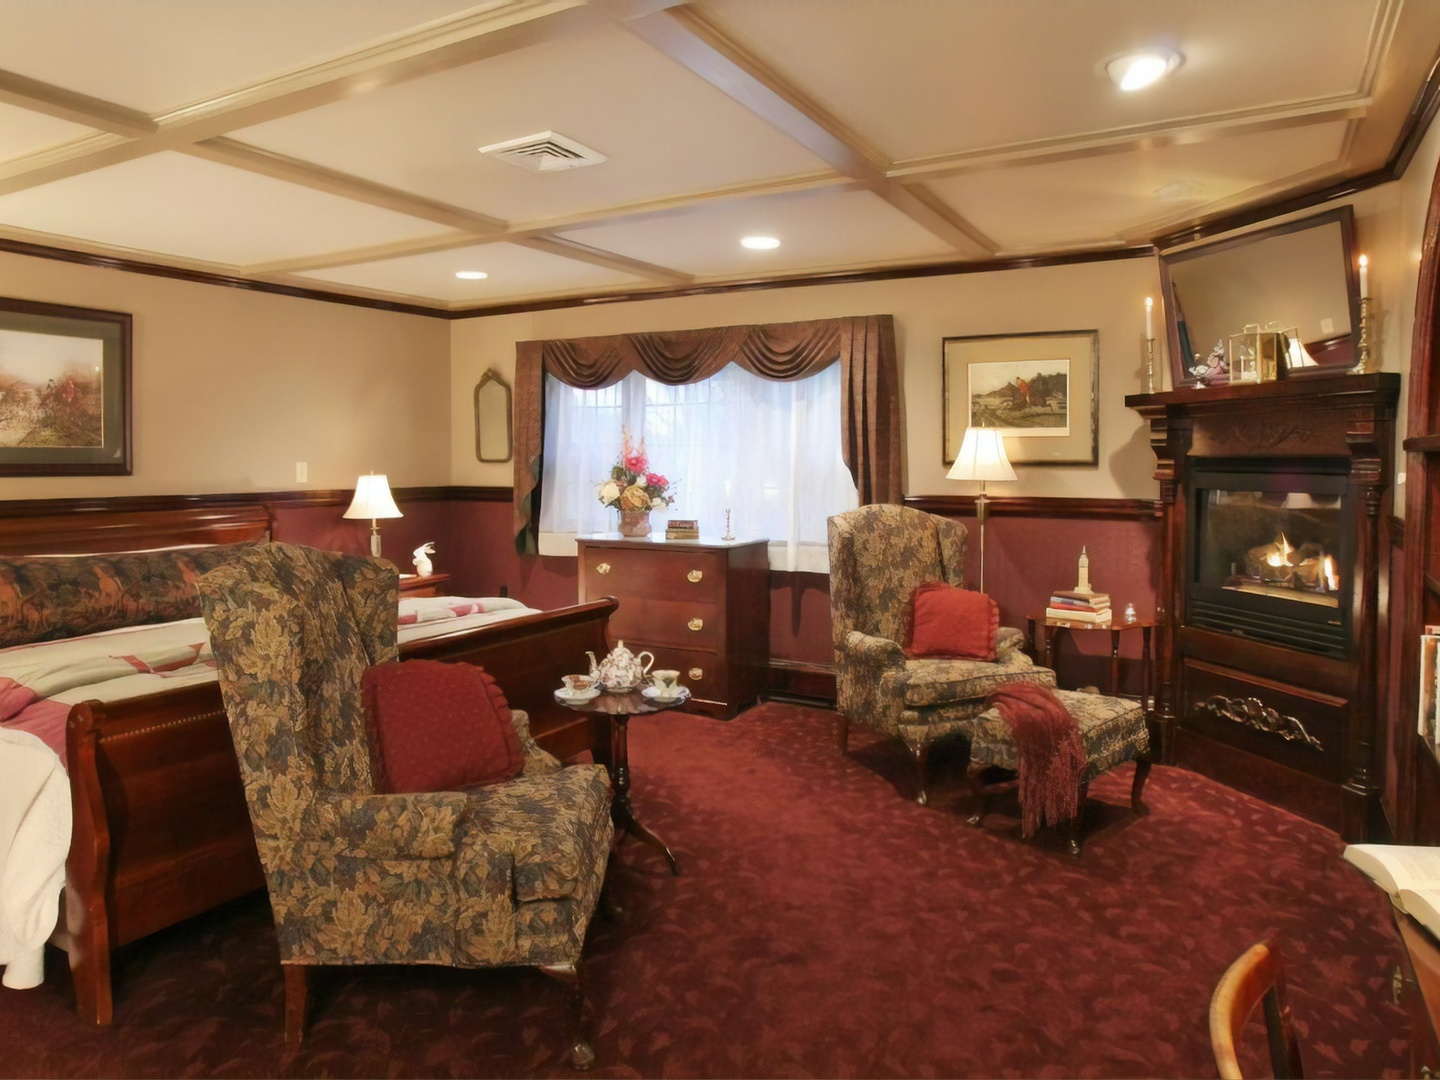 A living room filled with furniture and a rug at Rabbit Hill Inn.